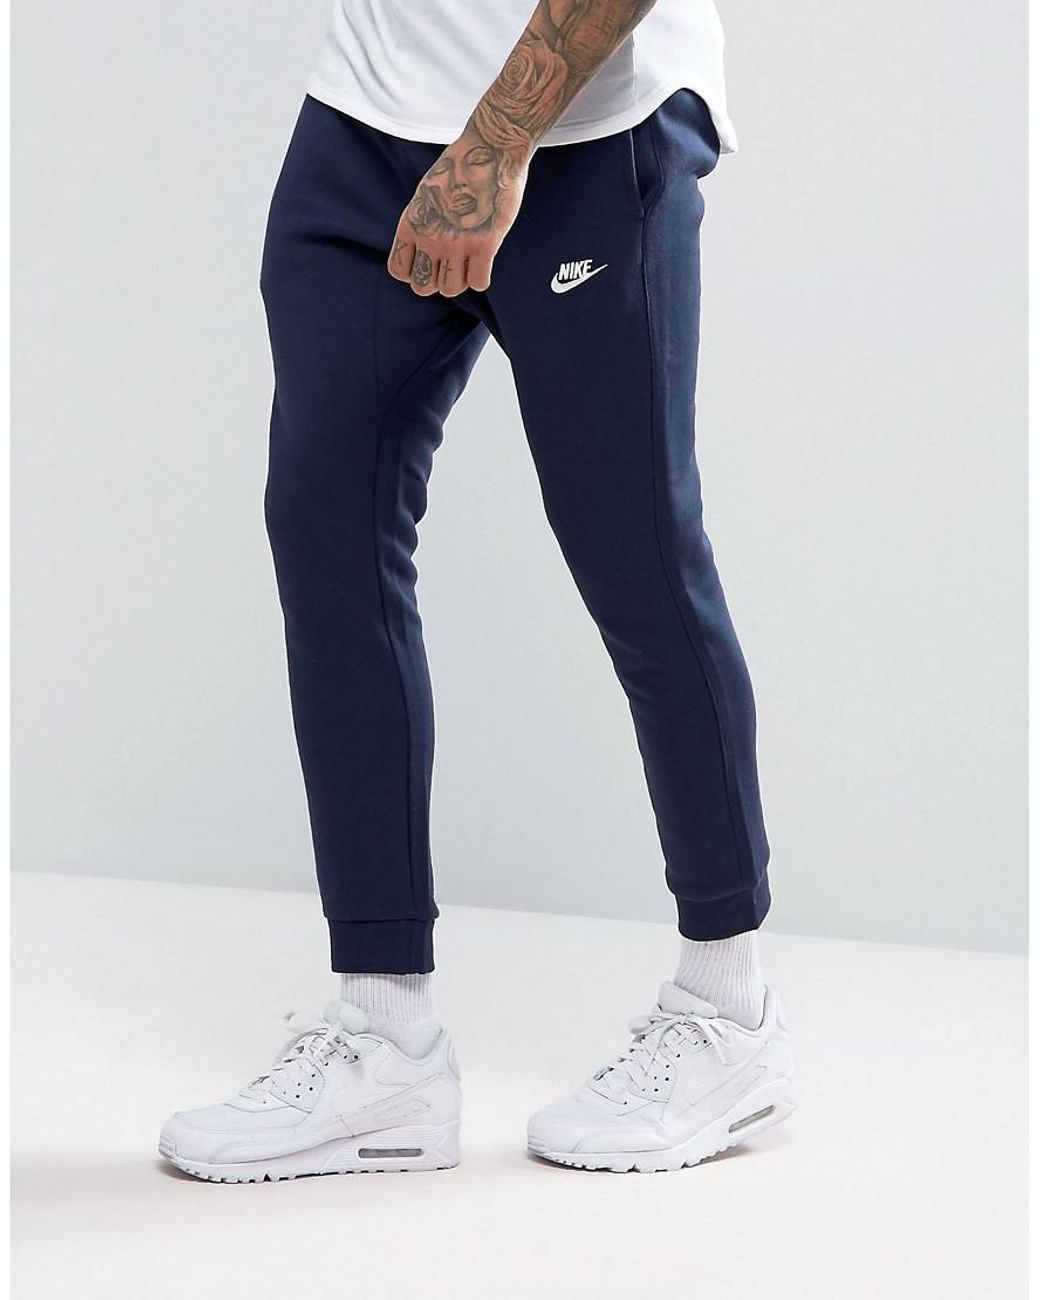 deefd2c7e874 Men s Blue Cuffed Club Jogger In Navy 804408-451 in 2019